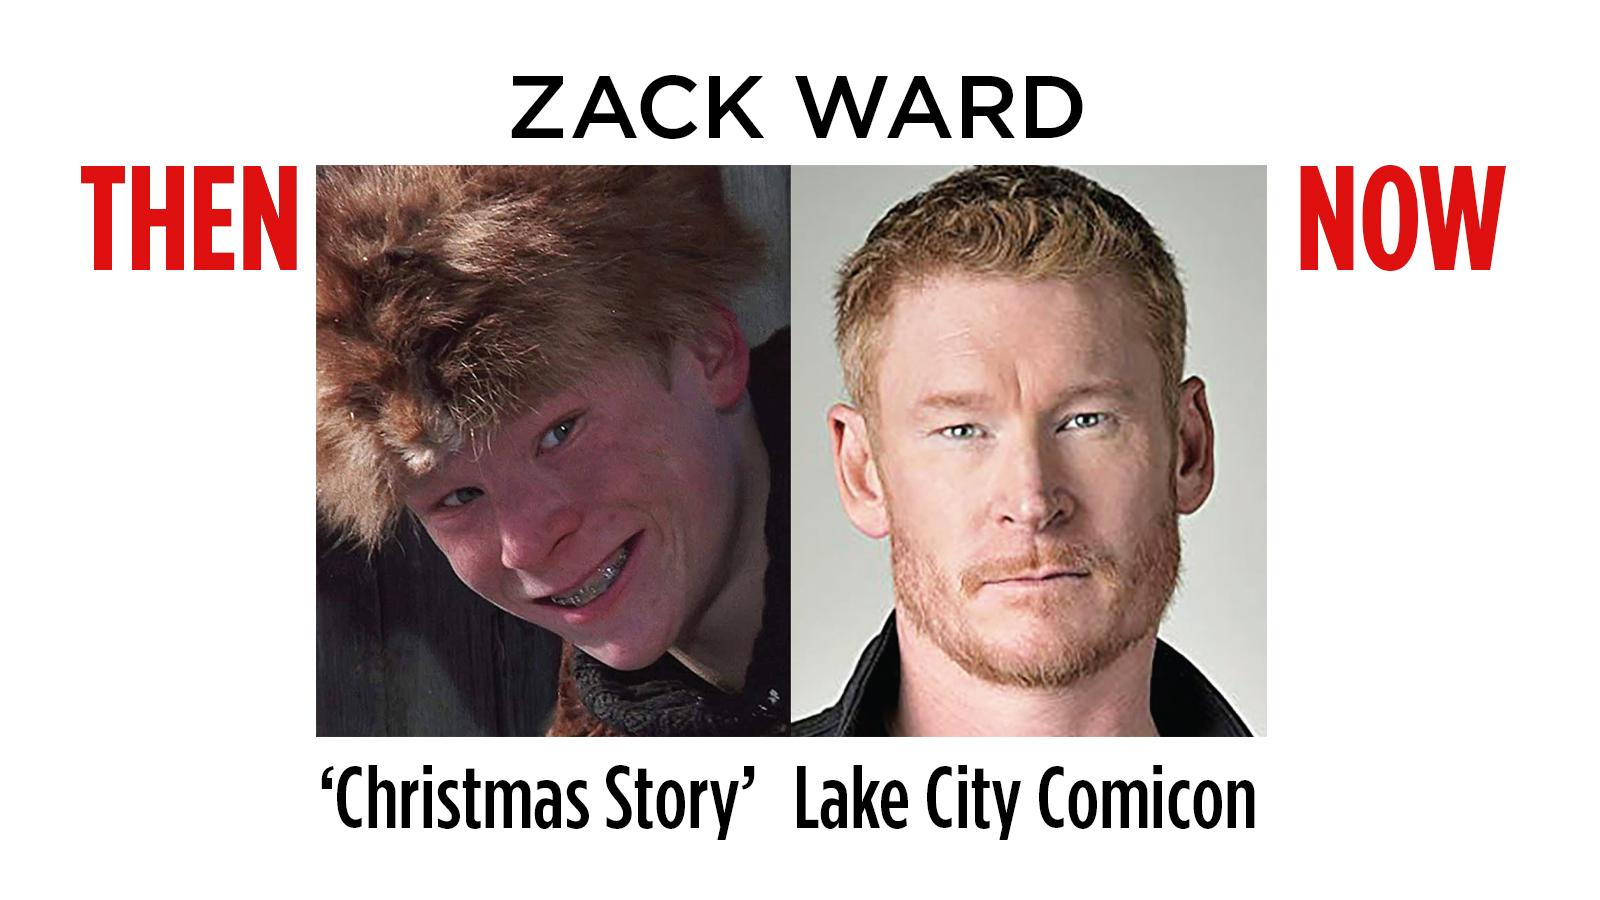 Christmas Story Meme.Zack Ward S Journey Continues Beyond Scut Farkus And